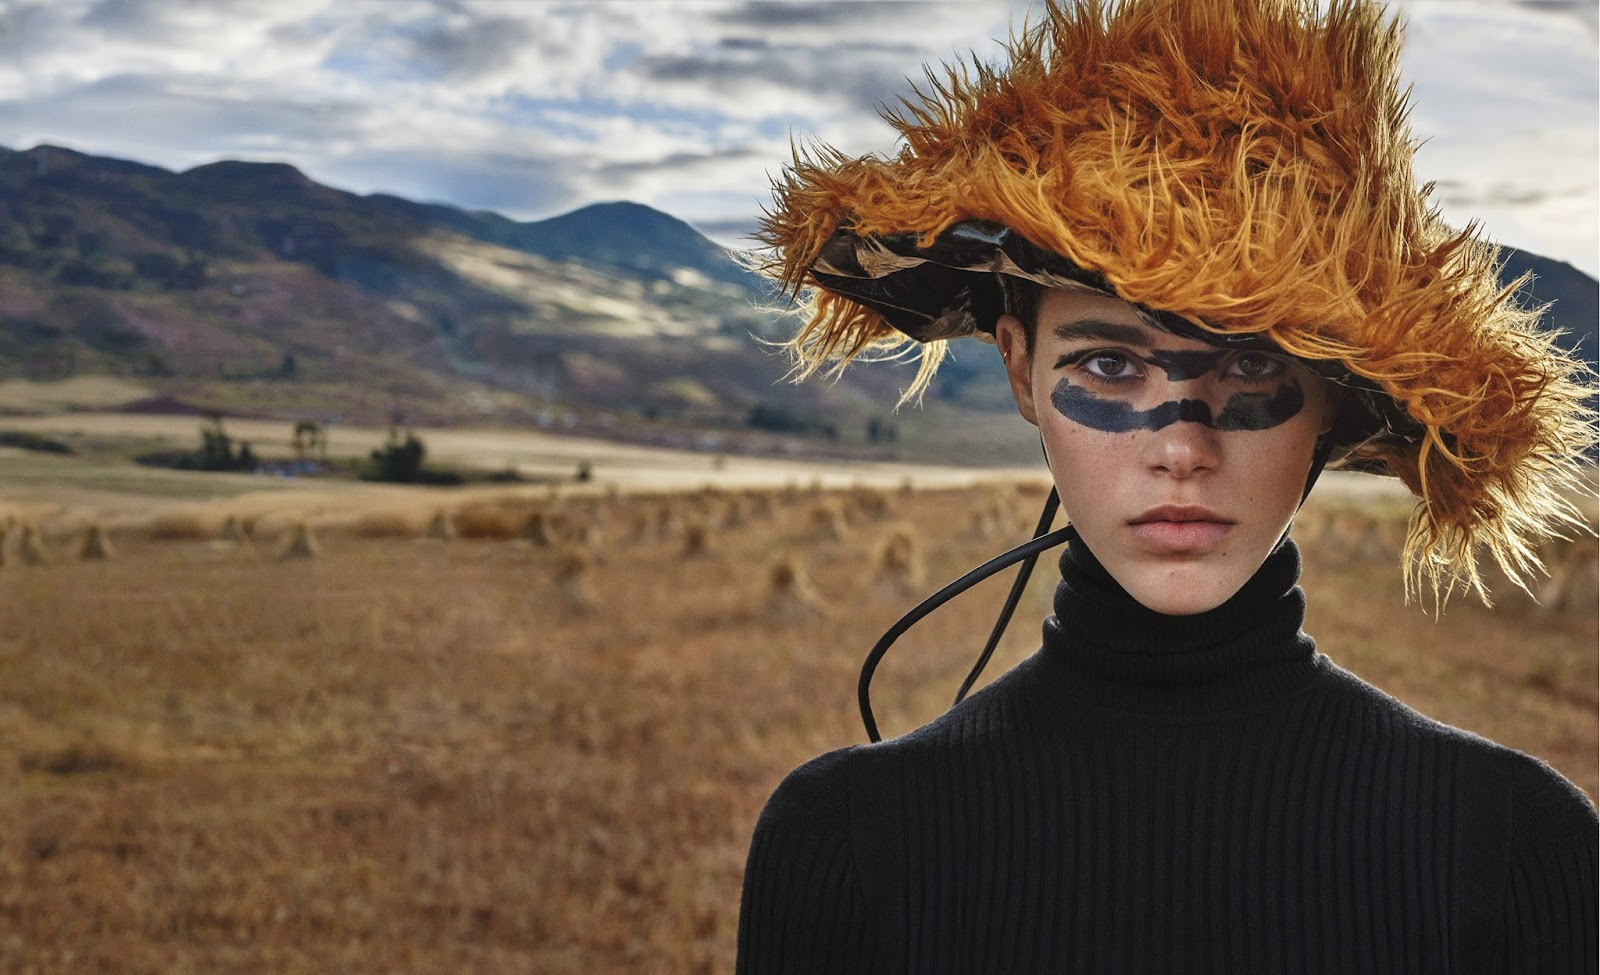 40d74160e39 Pauline Hoarau in Marie Claire US October 2017 by Michelangelo di ...